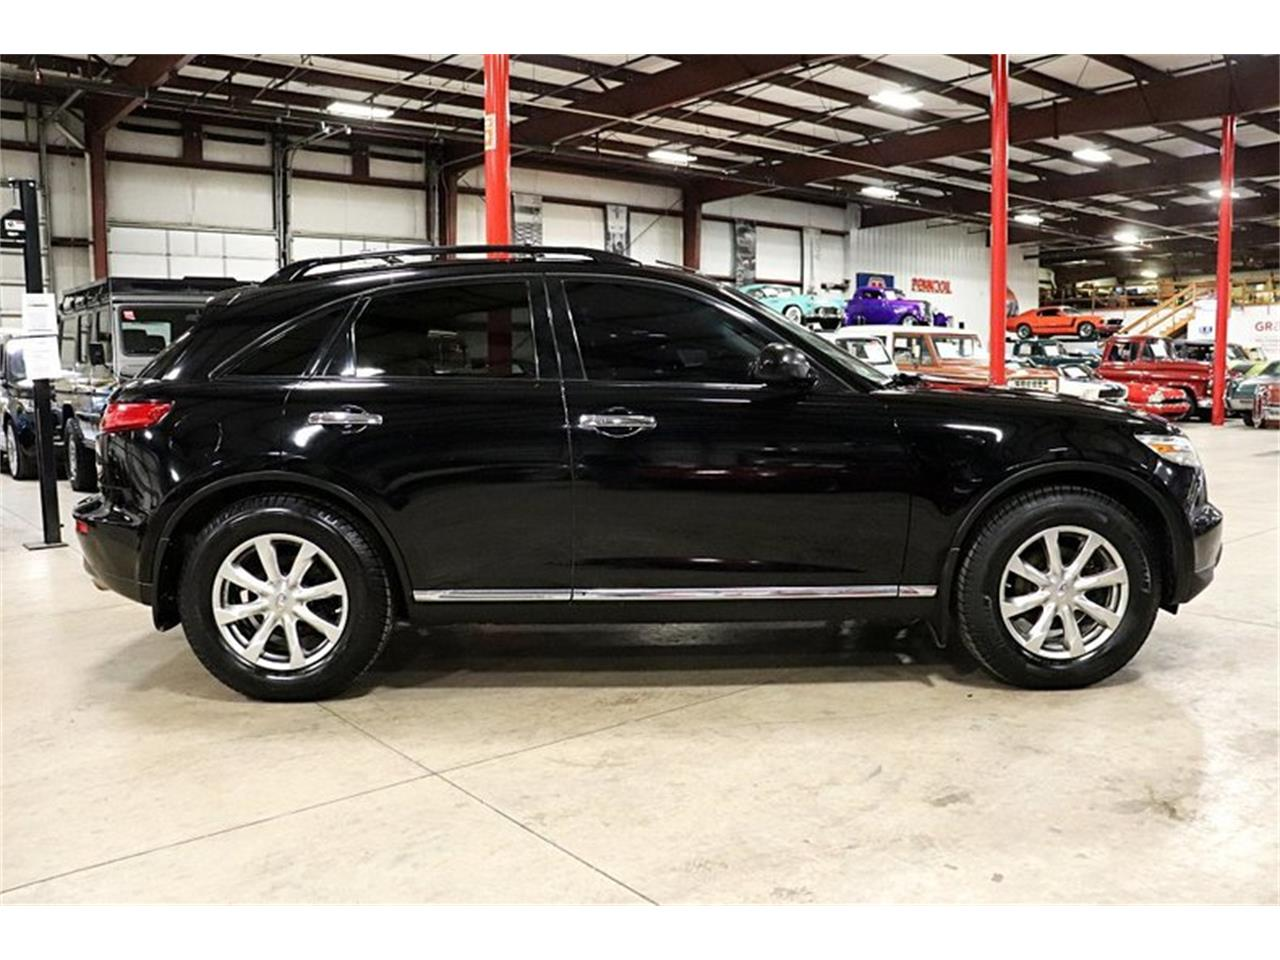 Large Picture of '08 Infiniti FX35 located in Kentwood Michigan - $7,900.00 - PY0U